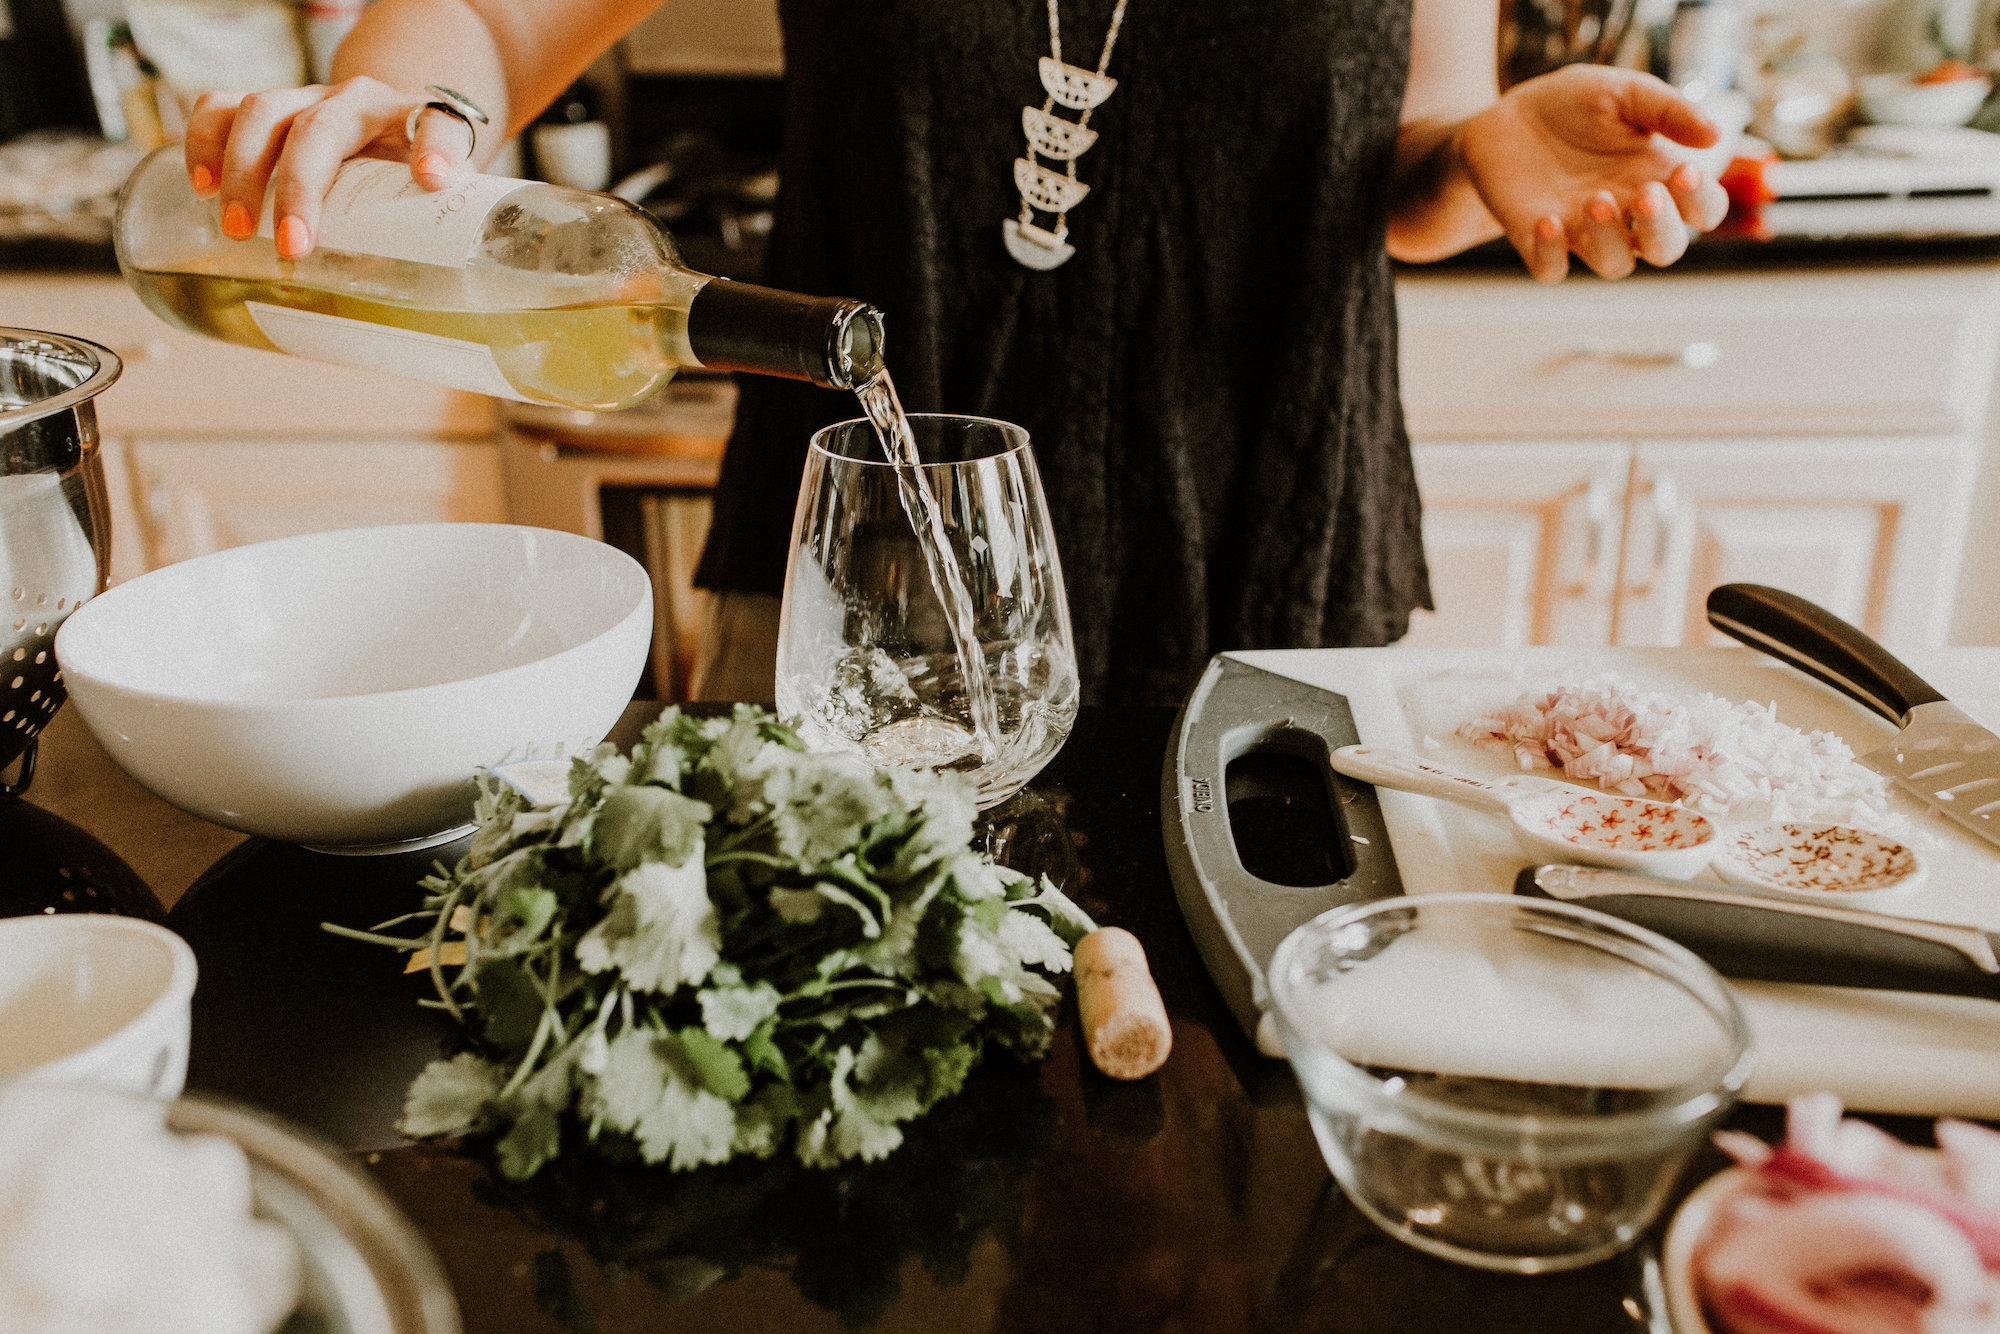 No dinner party is complete without good drinks | Summer Dinner Party | BySarahRae.com